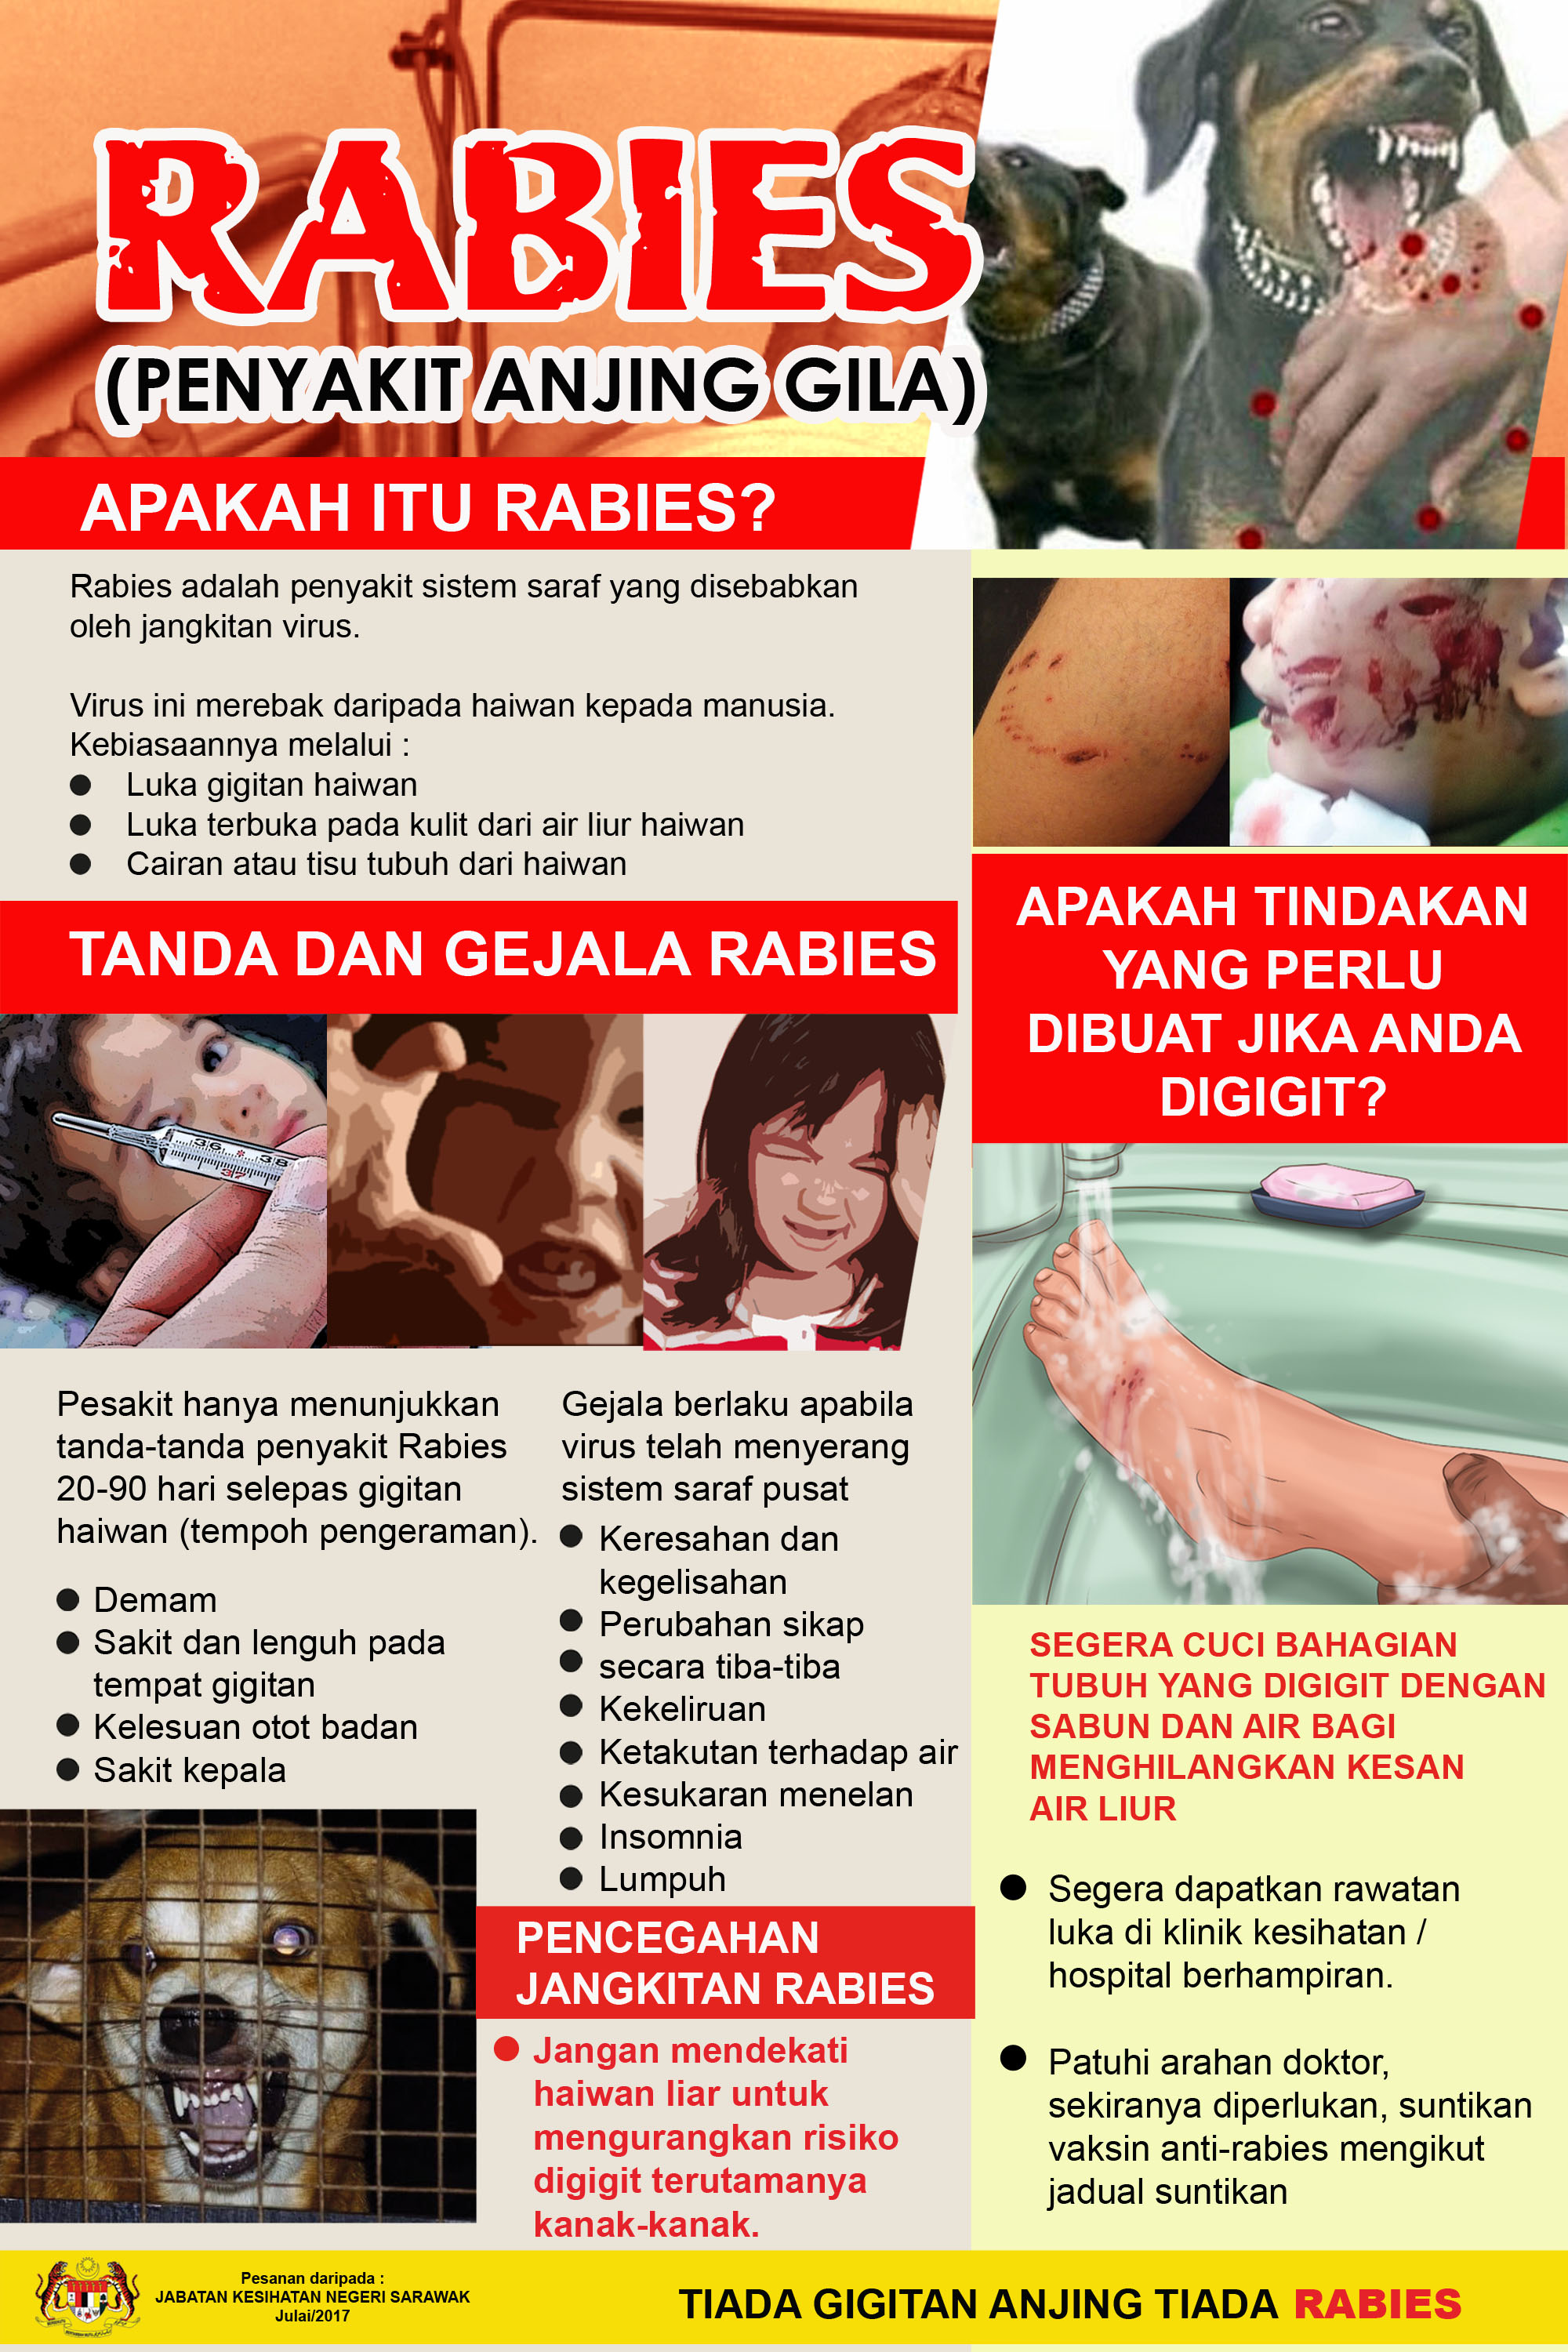 Malaysia rabies follow-up: 13th death in Sarawak - Outbreak News Today